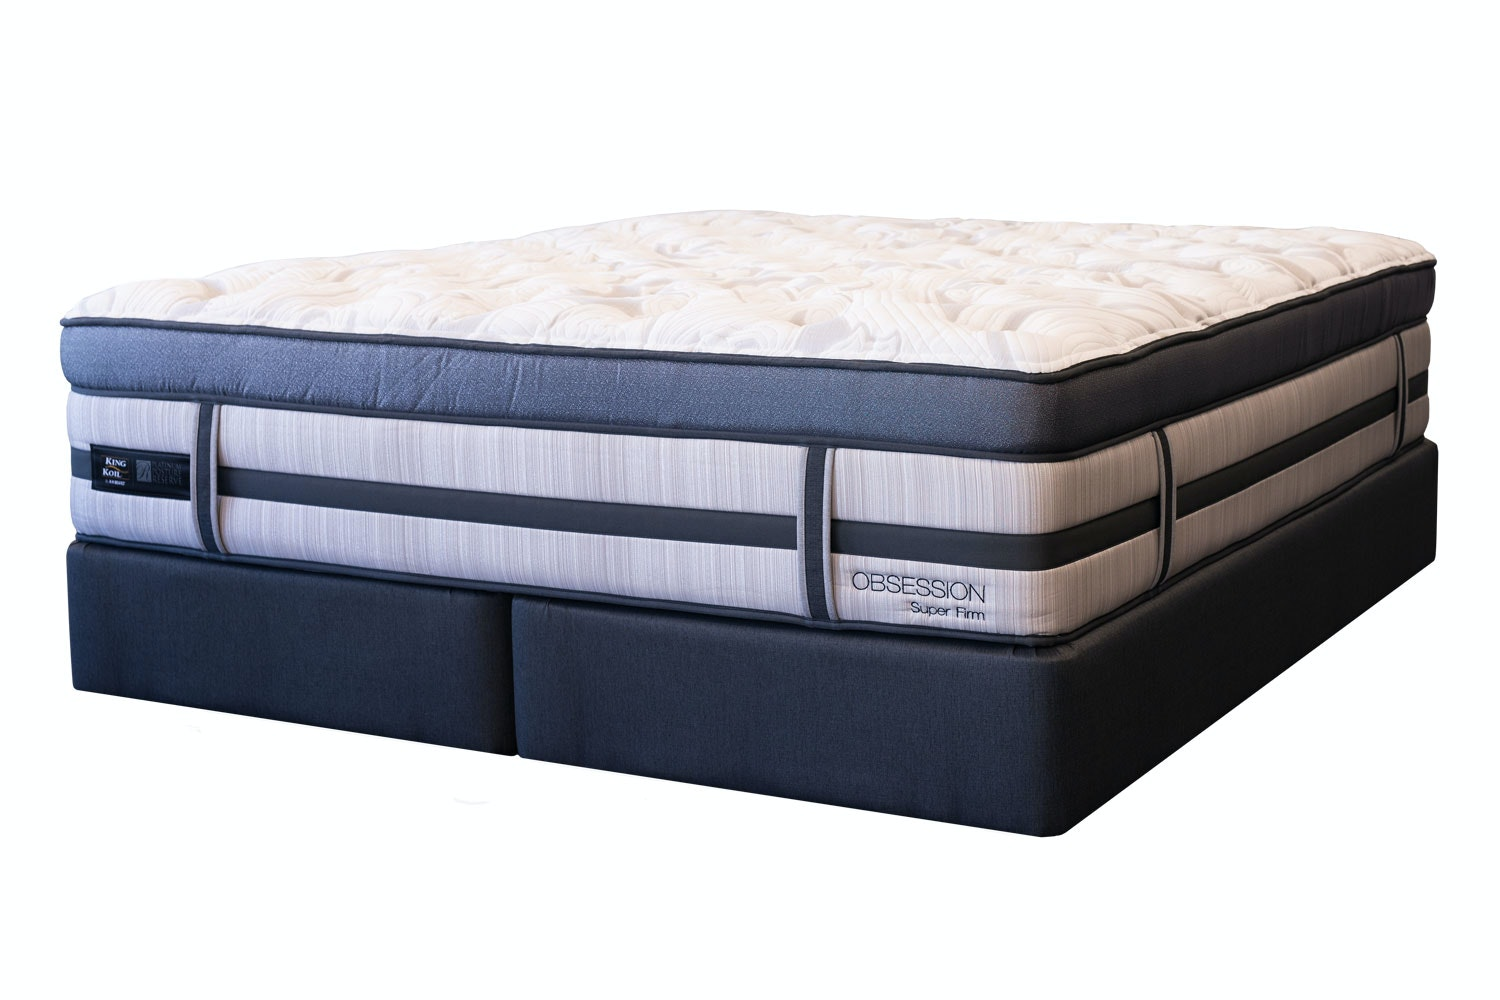 Obsession Super Firm Double Bed by King Koil